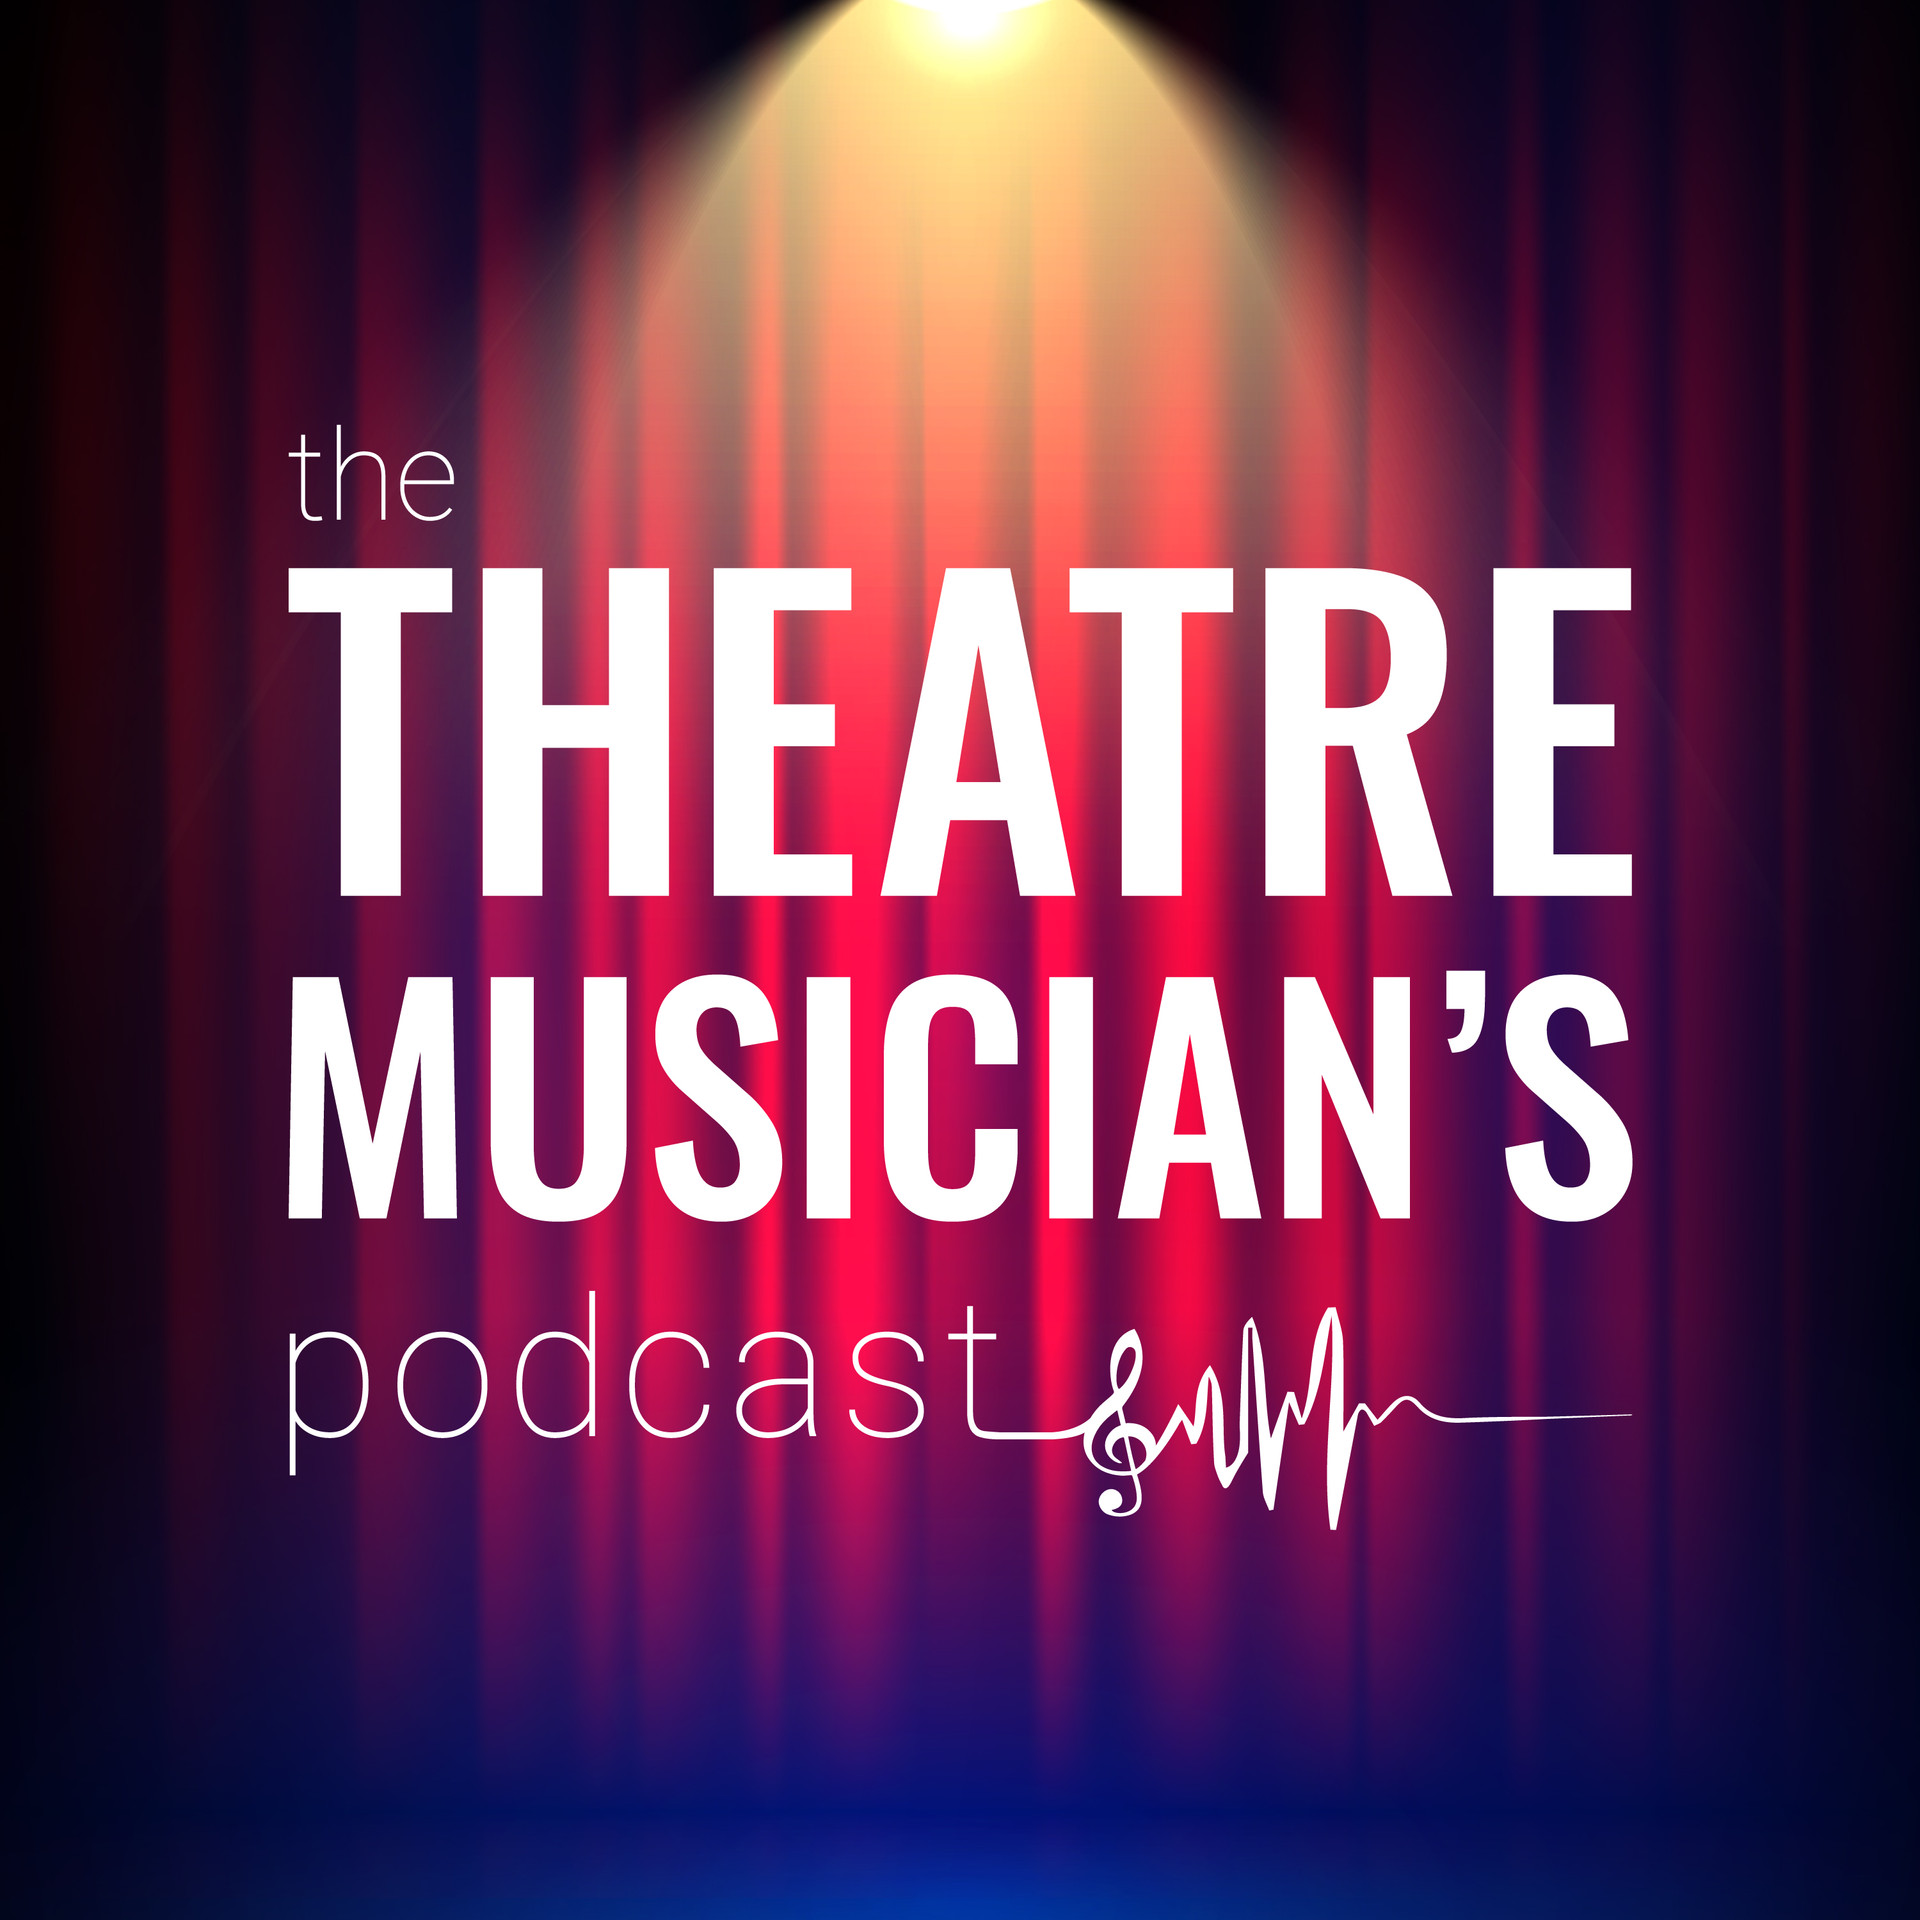 The-Theatre-Musicians-Podcast.jpg